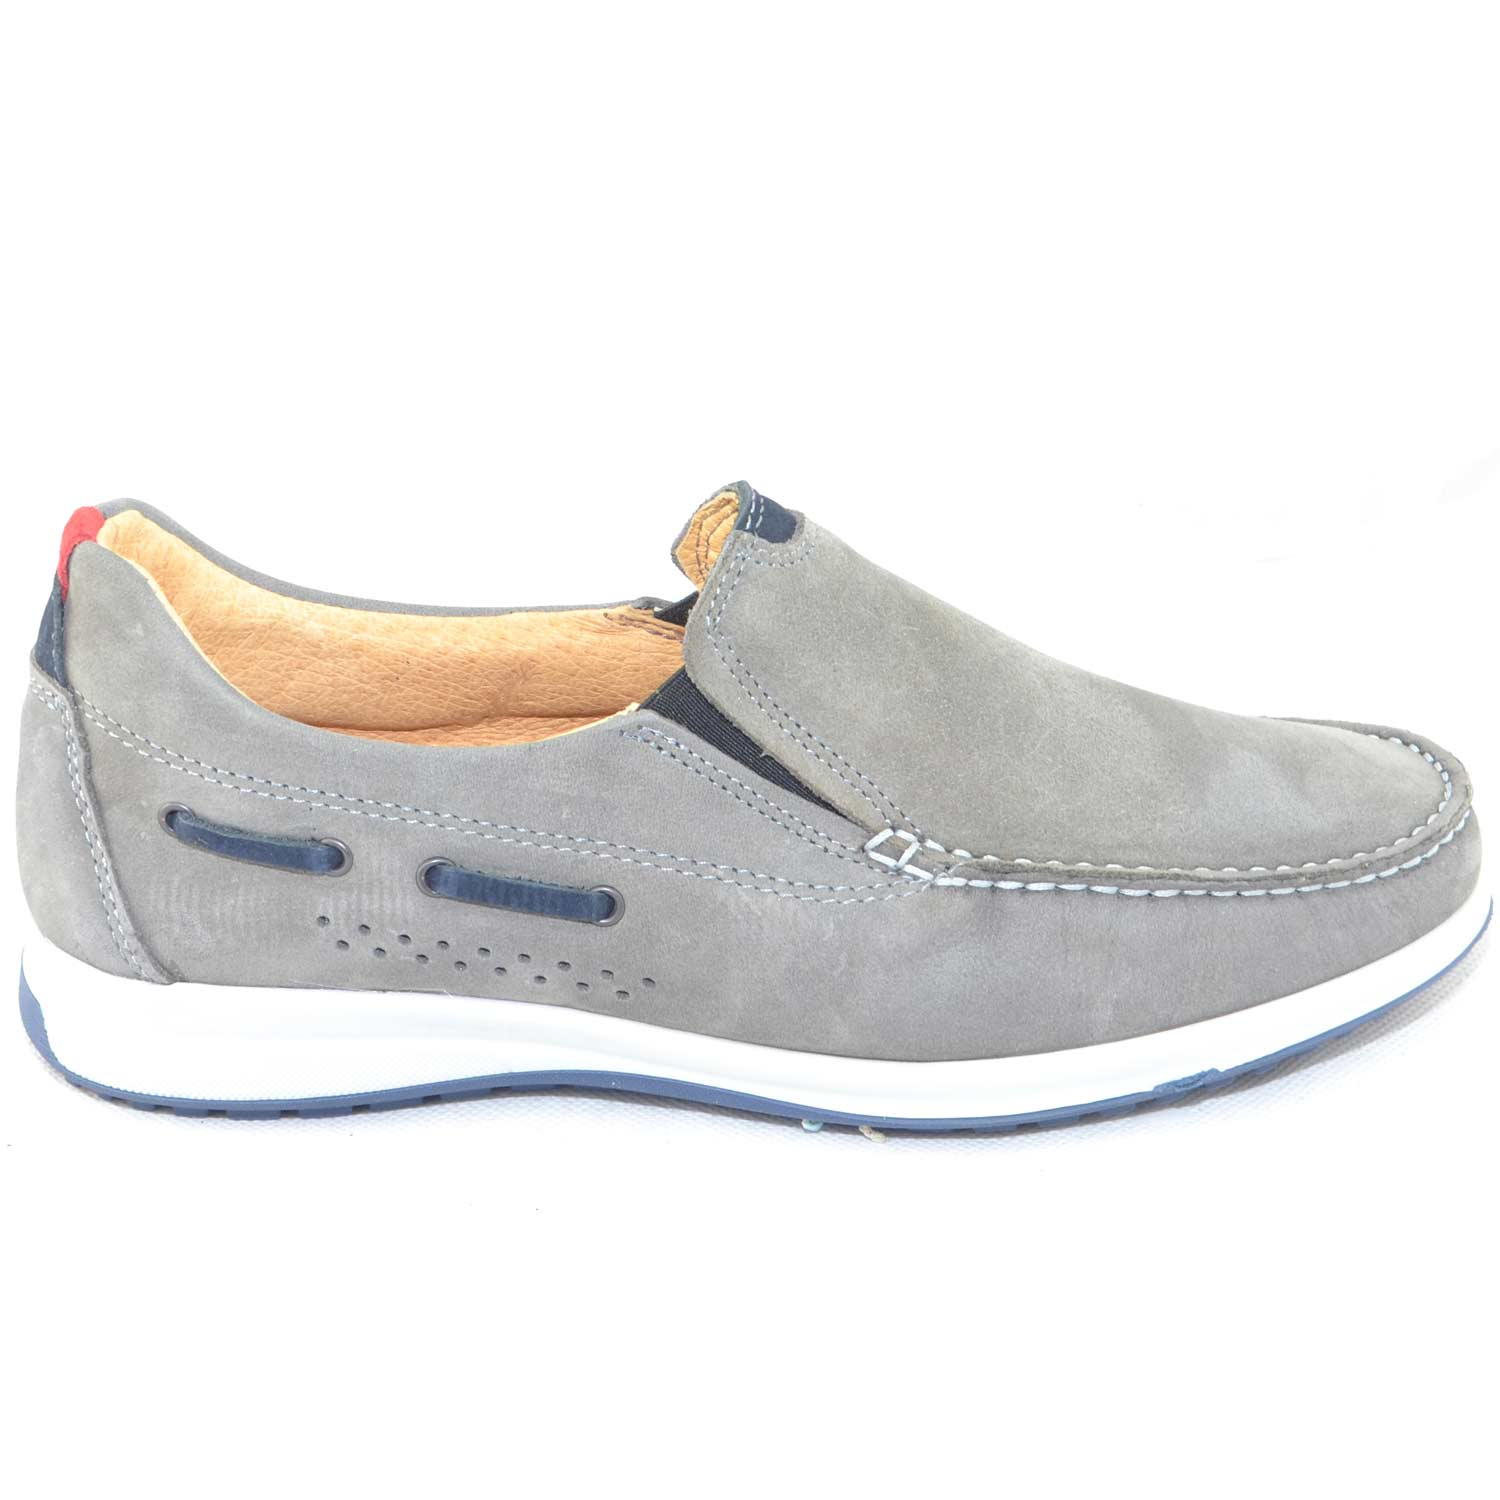 Scarpe uomo mocassino made in italy vera pelle brand interland original di alta qualita' casual comfort .